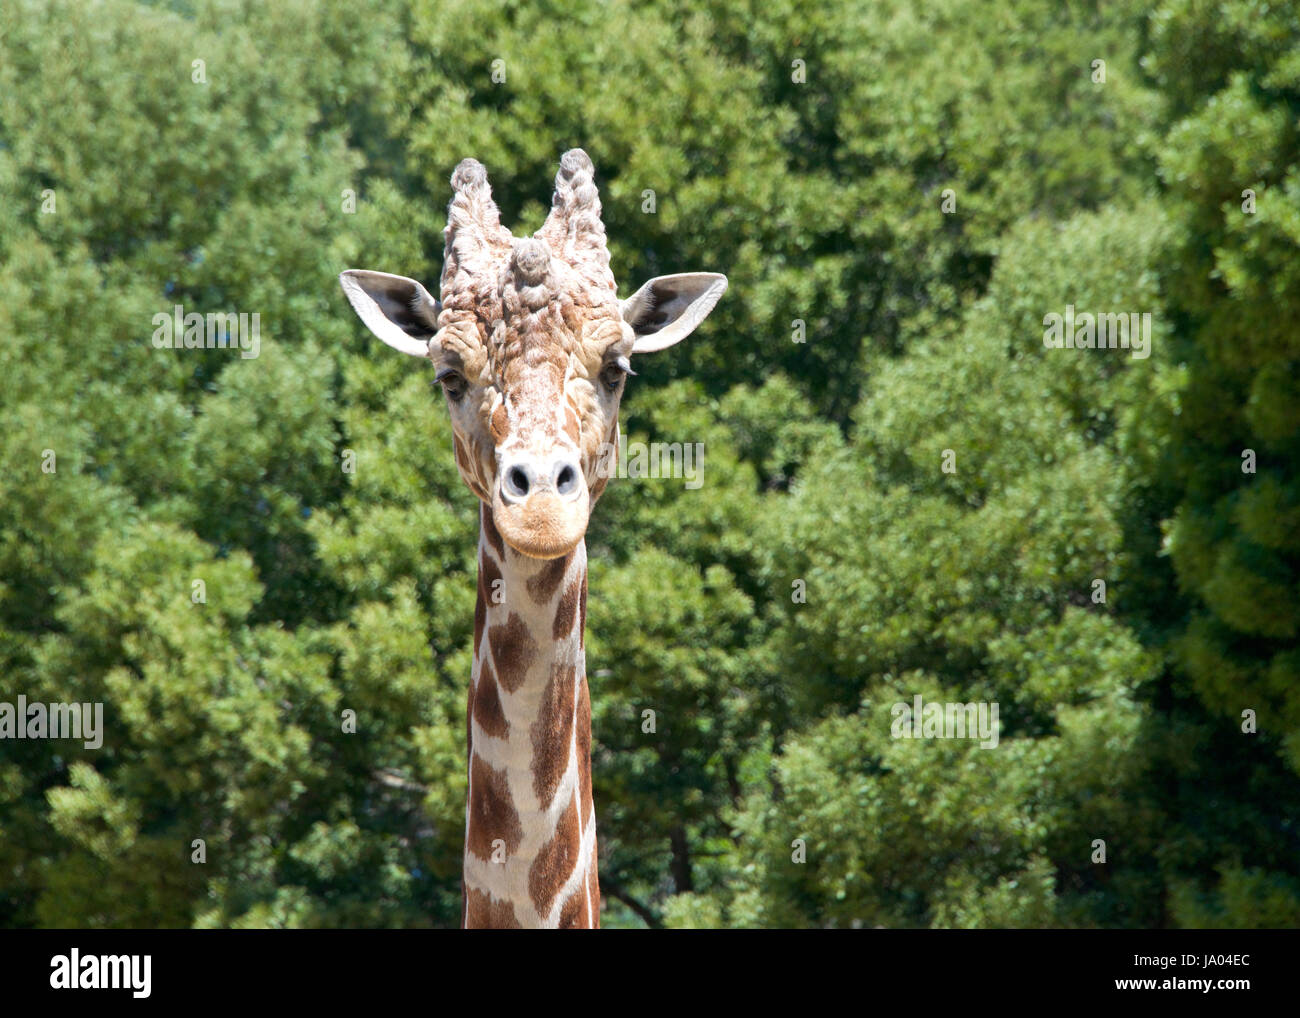 Portrait of a giraffe looking directly at viewers. Tall green leafy trees in the background. - Stock Image